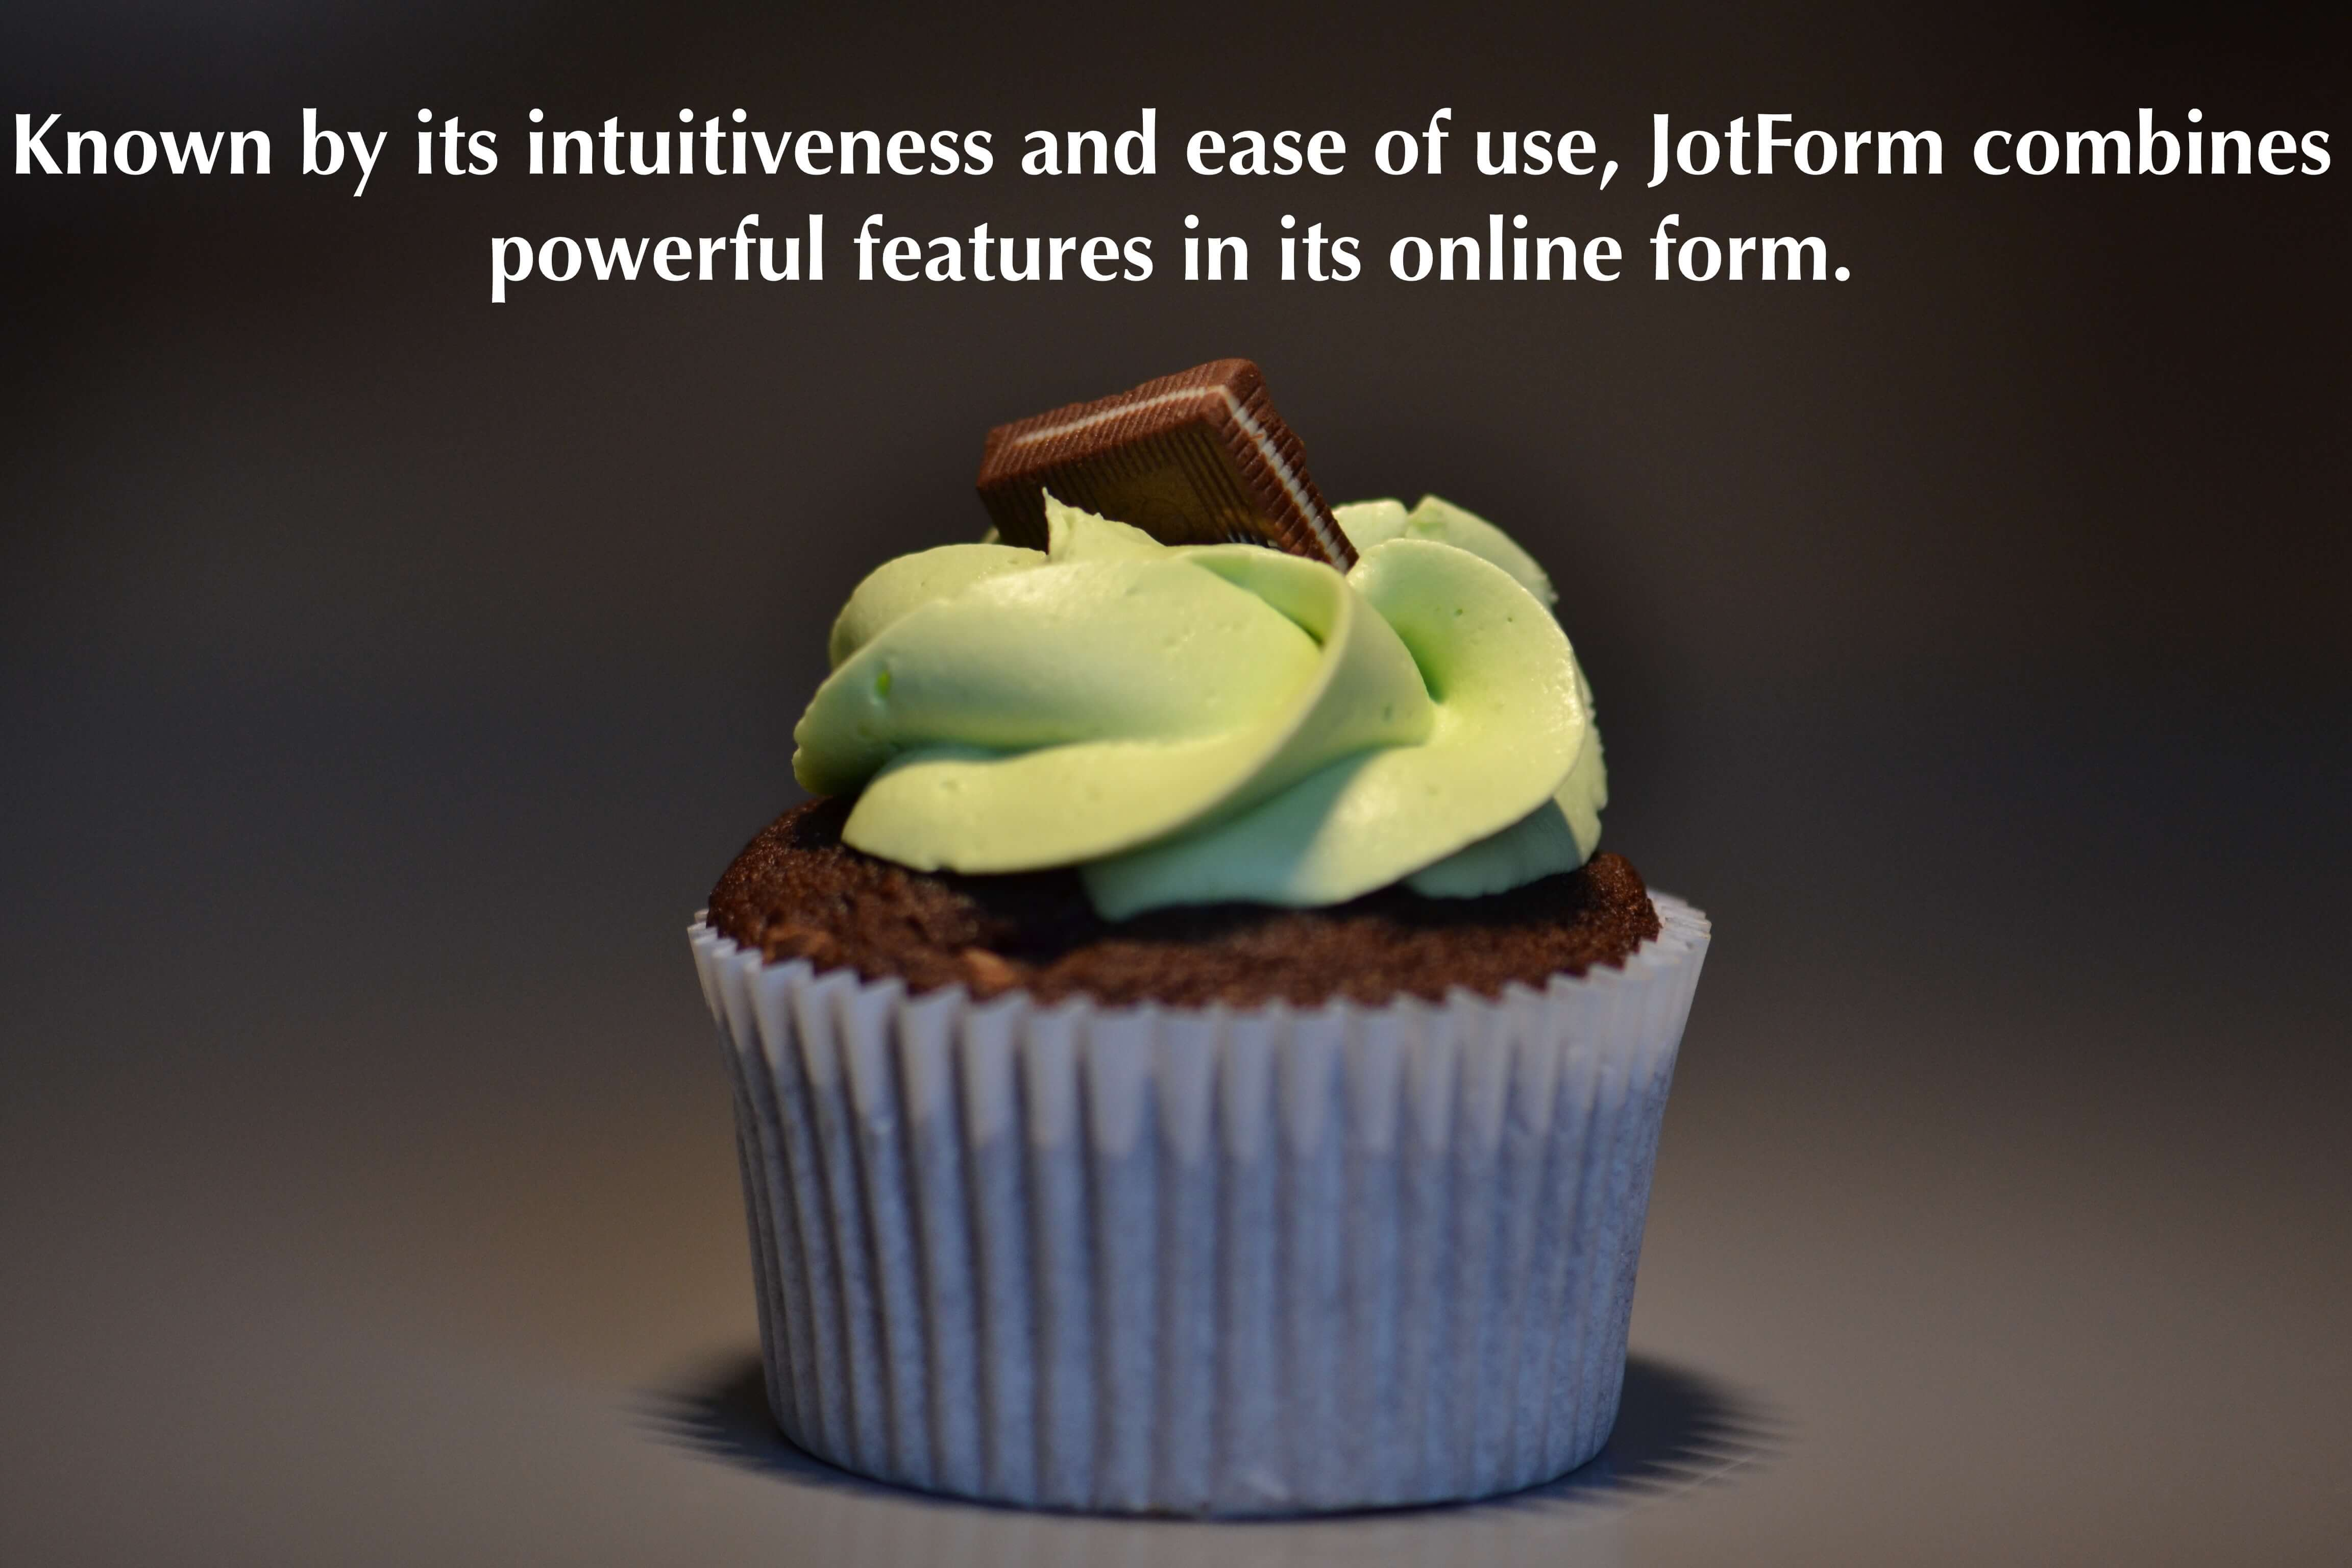 Known by its intuitiveness and ease of use, JotForm combines powerful features in its online form.